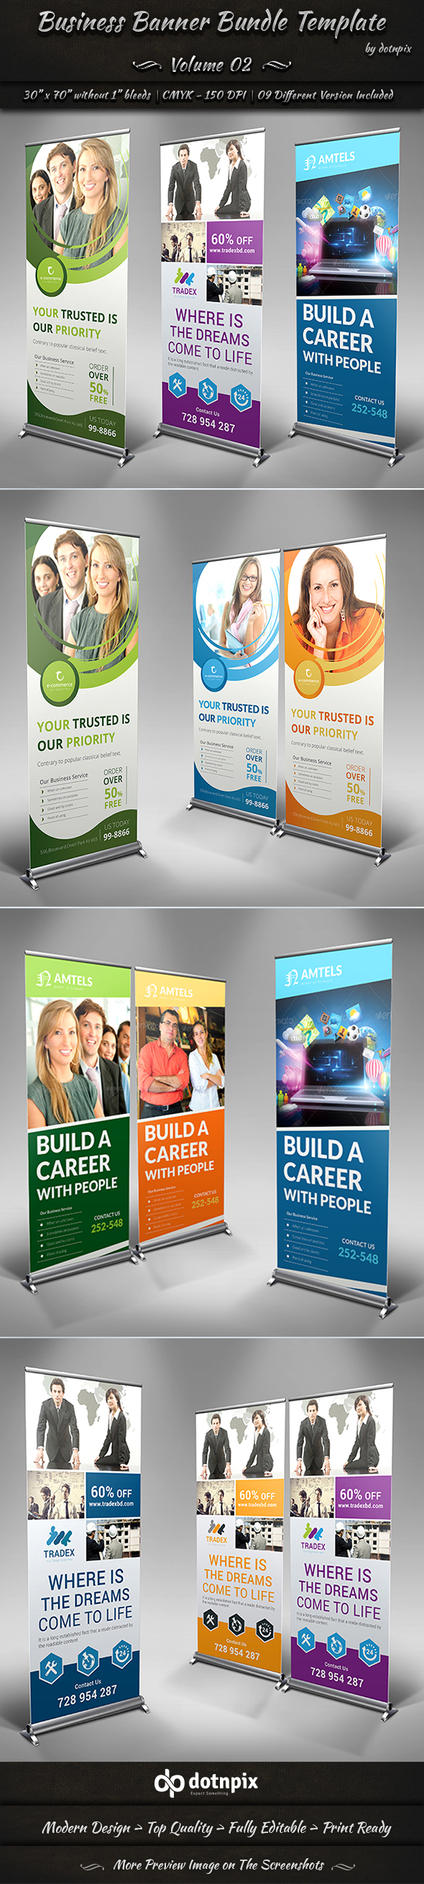 Business Banner Bundle Template - Volume 2 by dotnpix